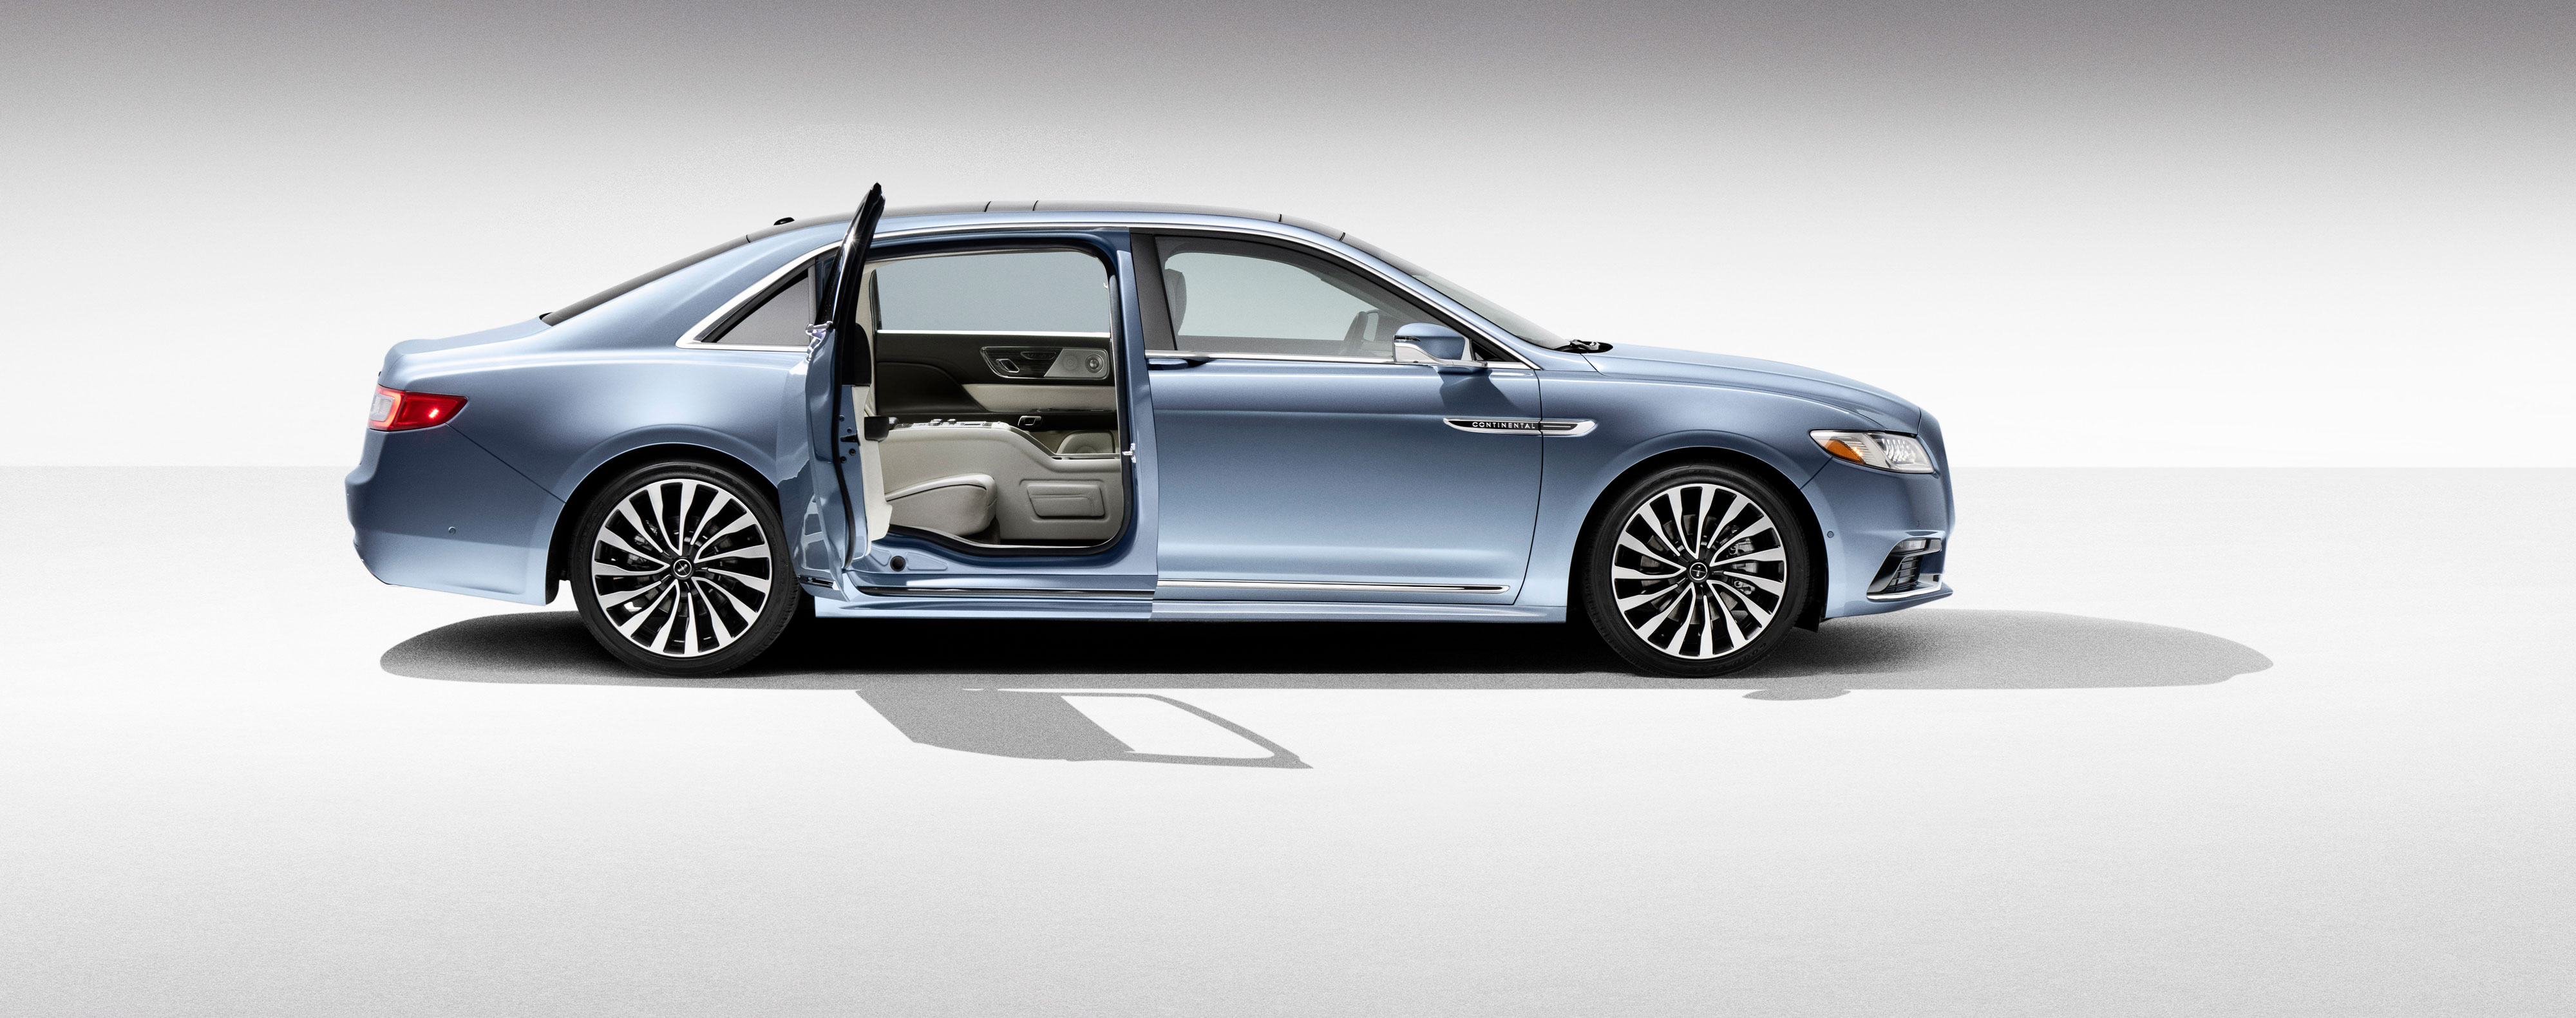 2019 lincoln continental stretch suicide doors front view